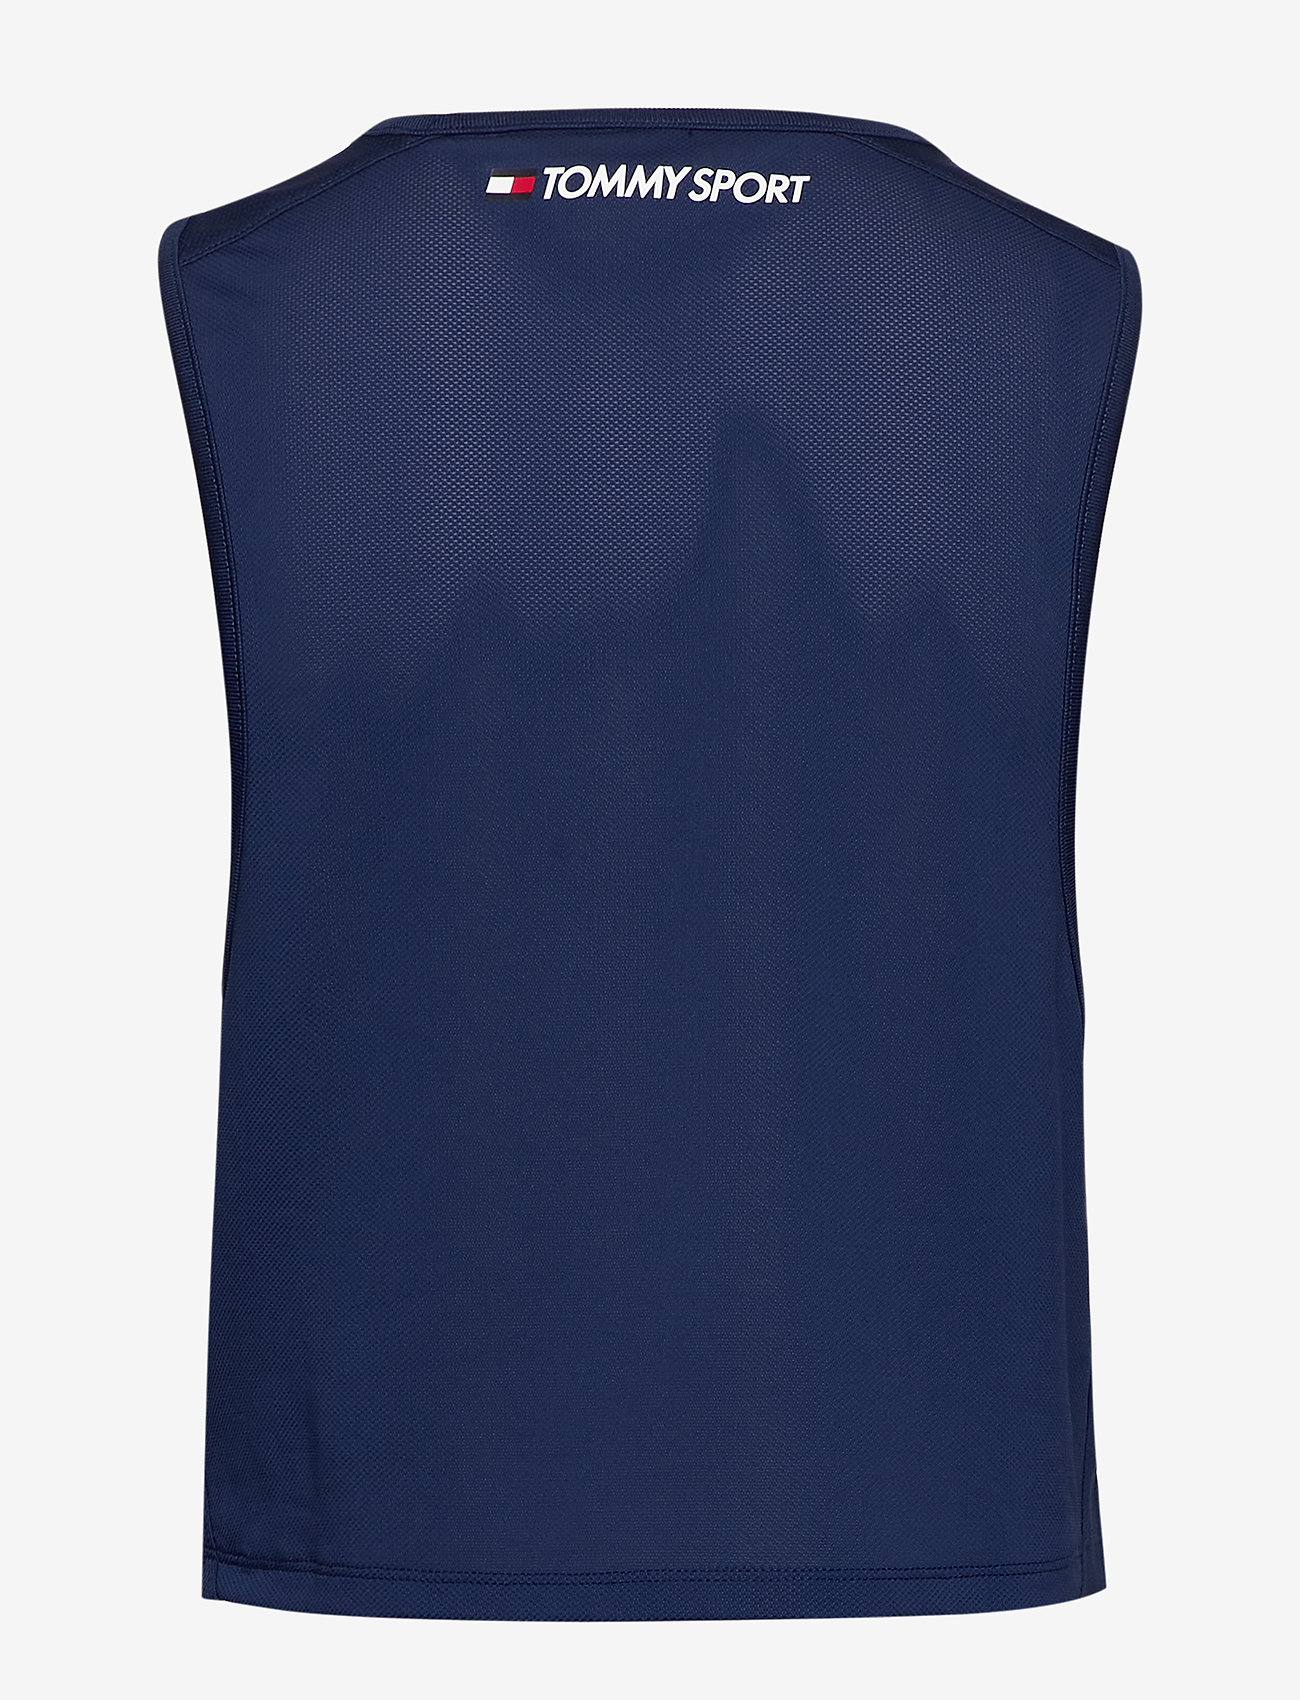 Tommy Sport - PERFORMANCE TANK TOP LBR - tank tops - blue ink - 1